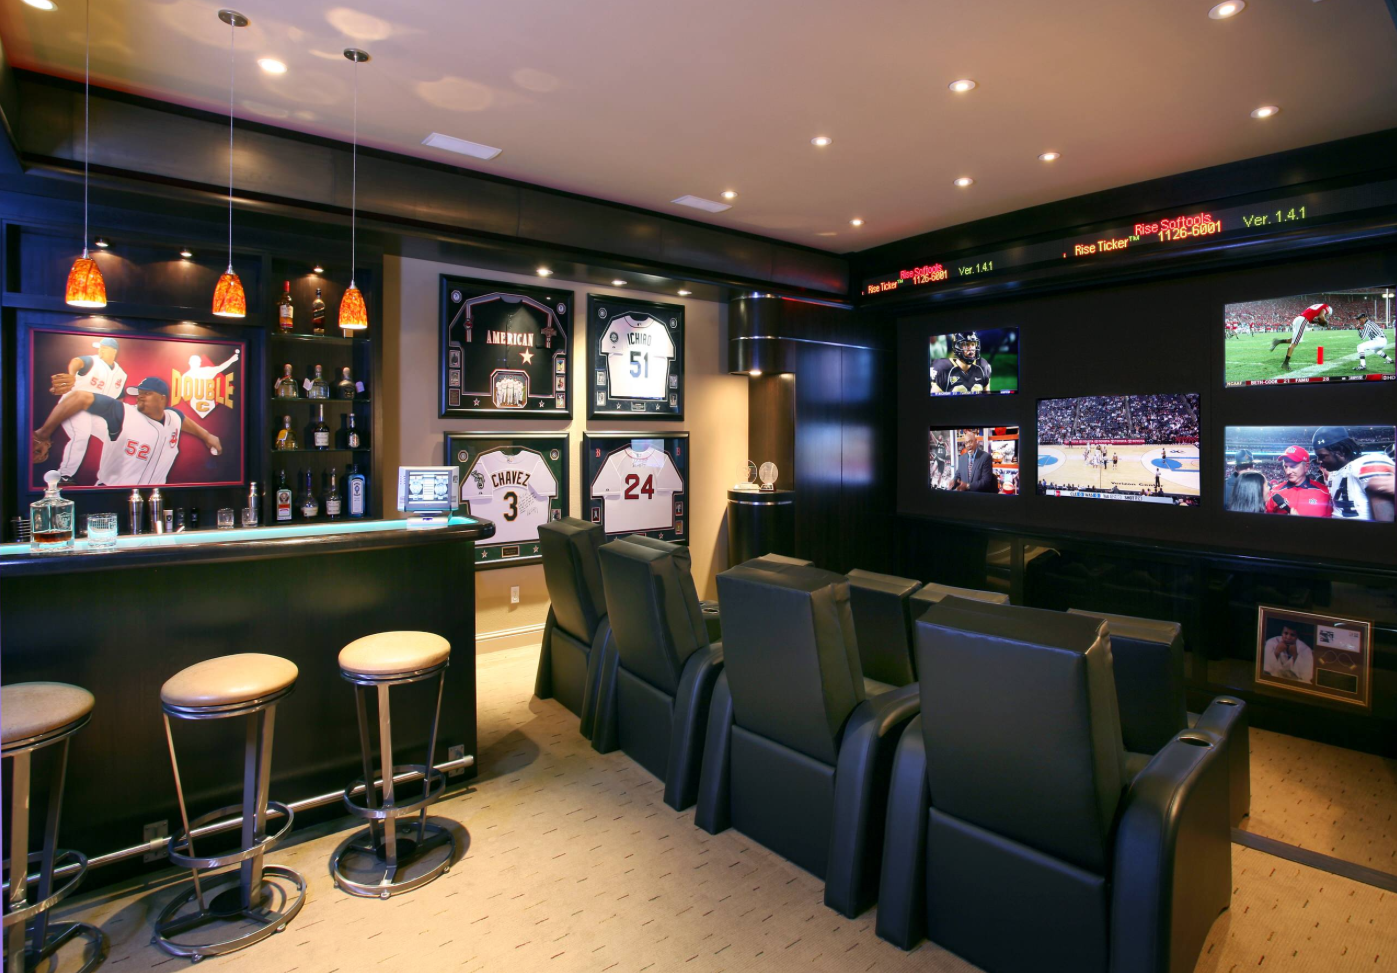 Best man cave installation ideas 23 - 5 Hanging Out At The Sports Bar